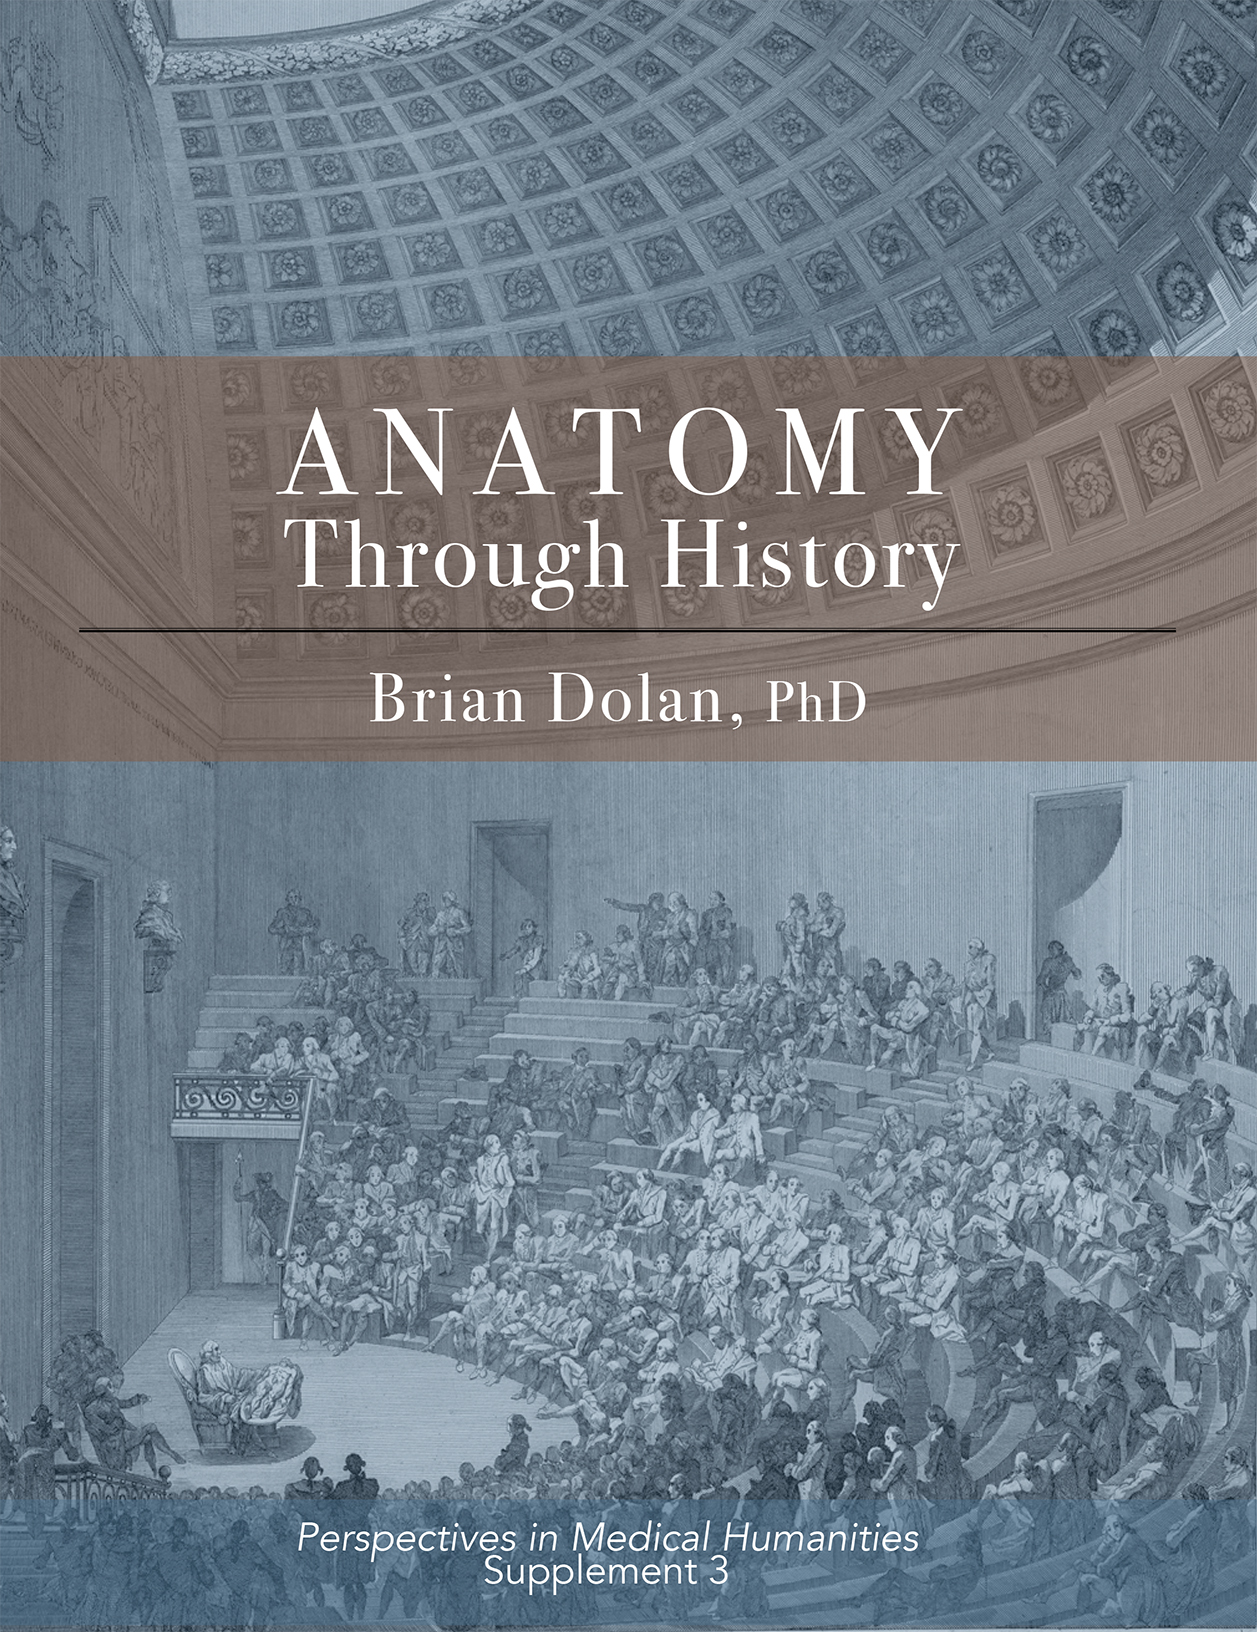 Anatomy Through History cover showing anatomical theater in the Renaissance